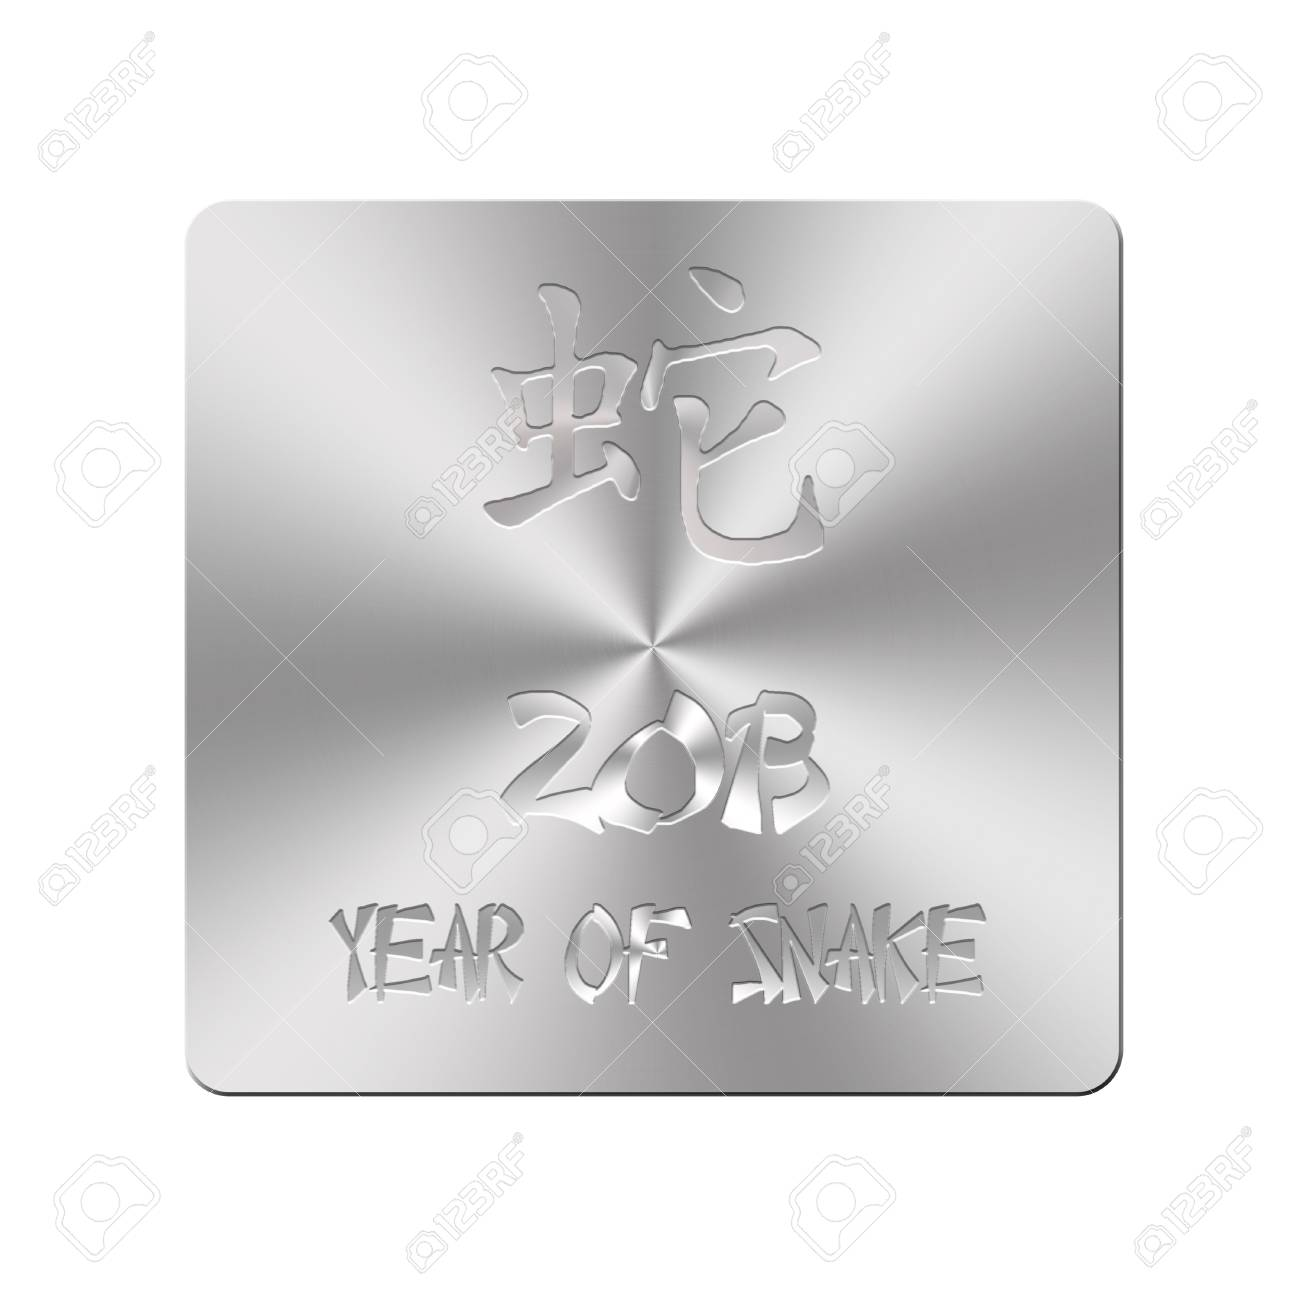 Illustration with a Year of Snake button on a white background Stock Photo - 16057955